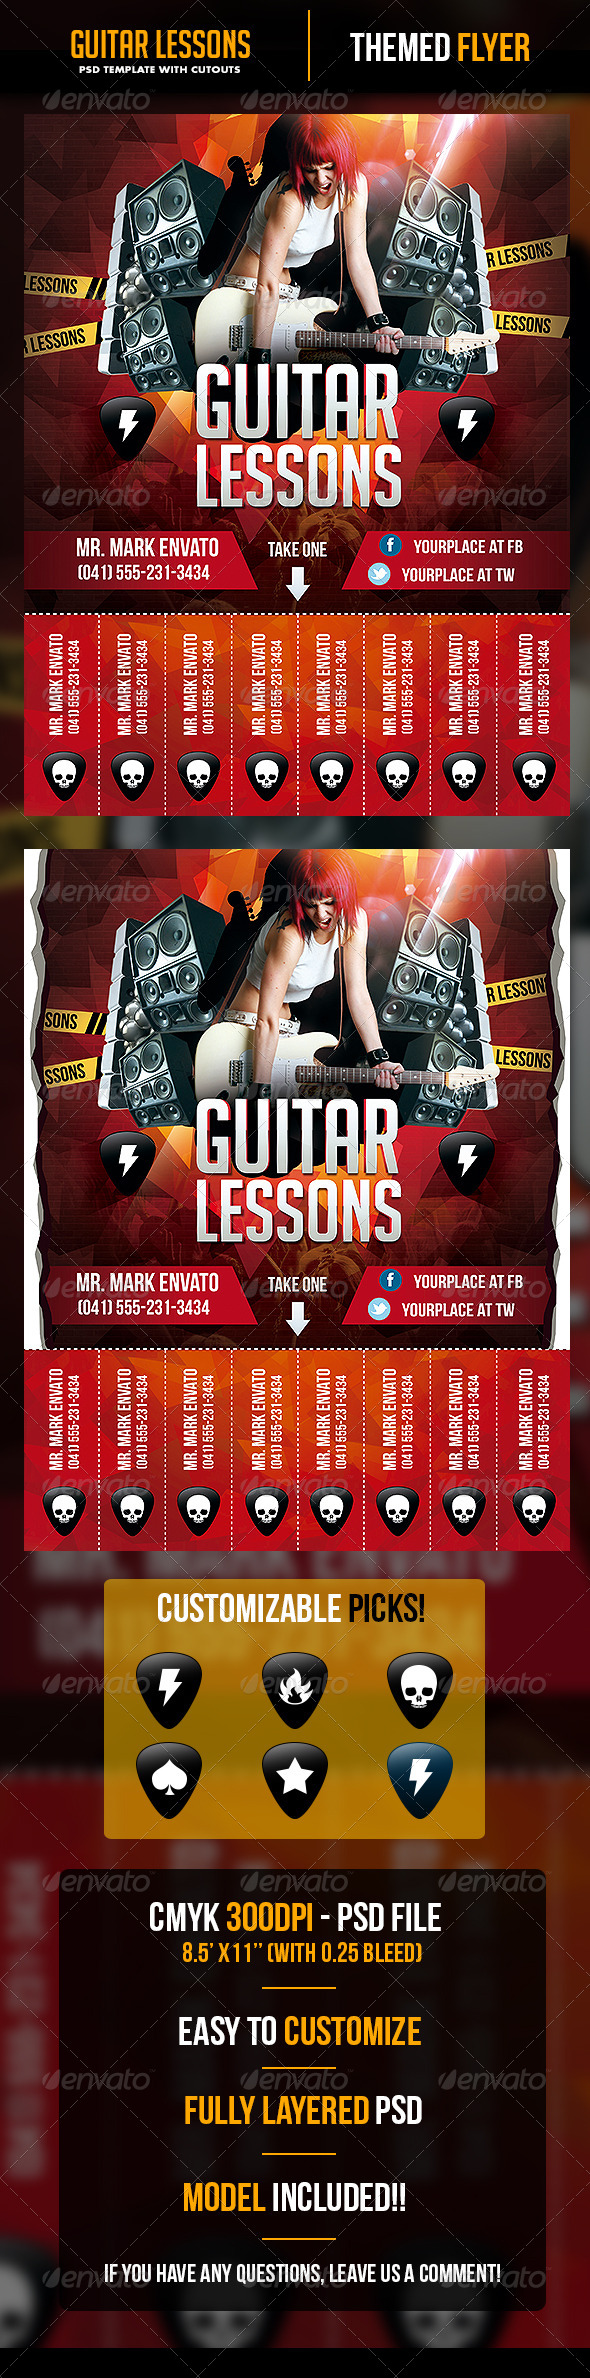 GraphicRiver Guitar Lessons Flyer Template with Cutouts 5225088